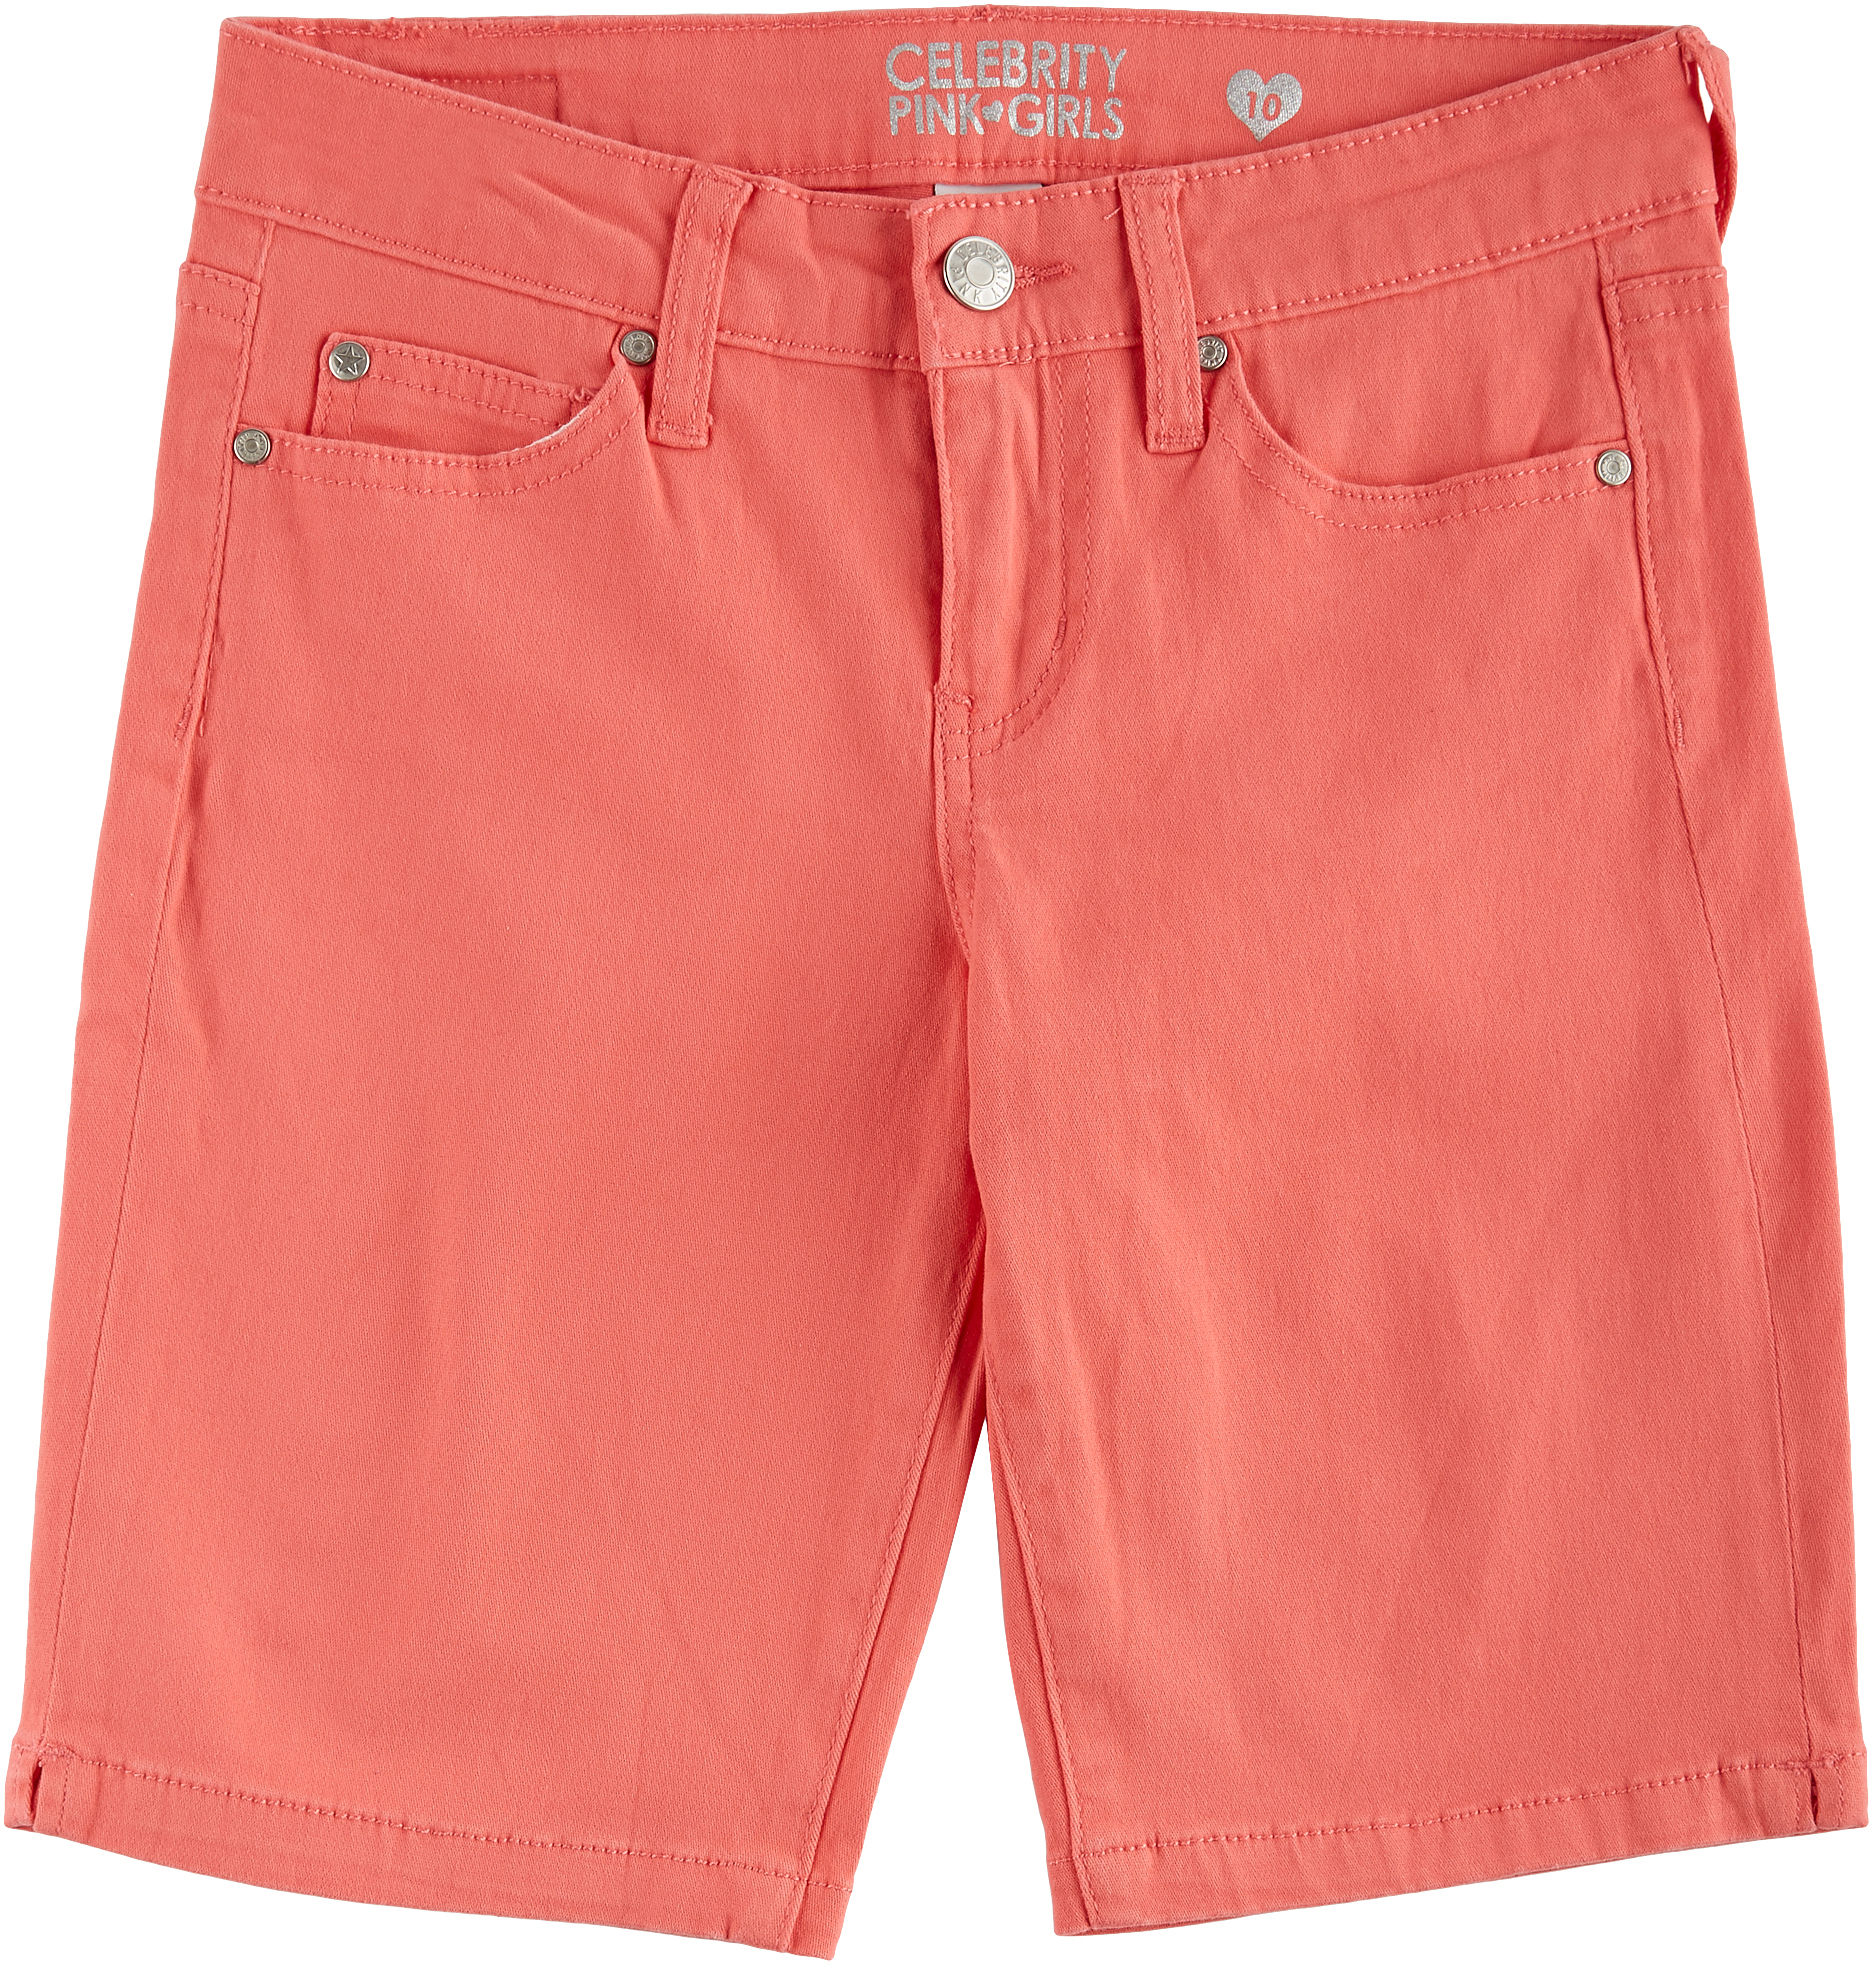 Shop for and buy girls bermuda shorts online at Macy's. Find girls bermuda shorts at Macy's.